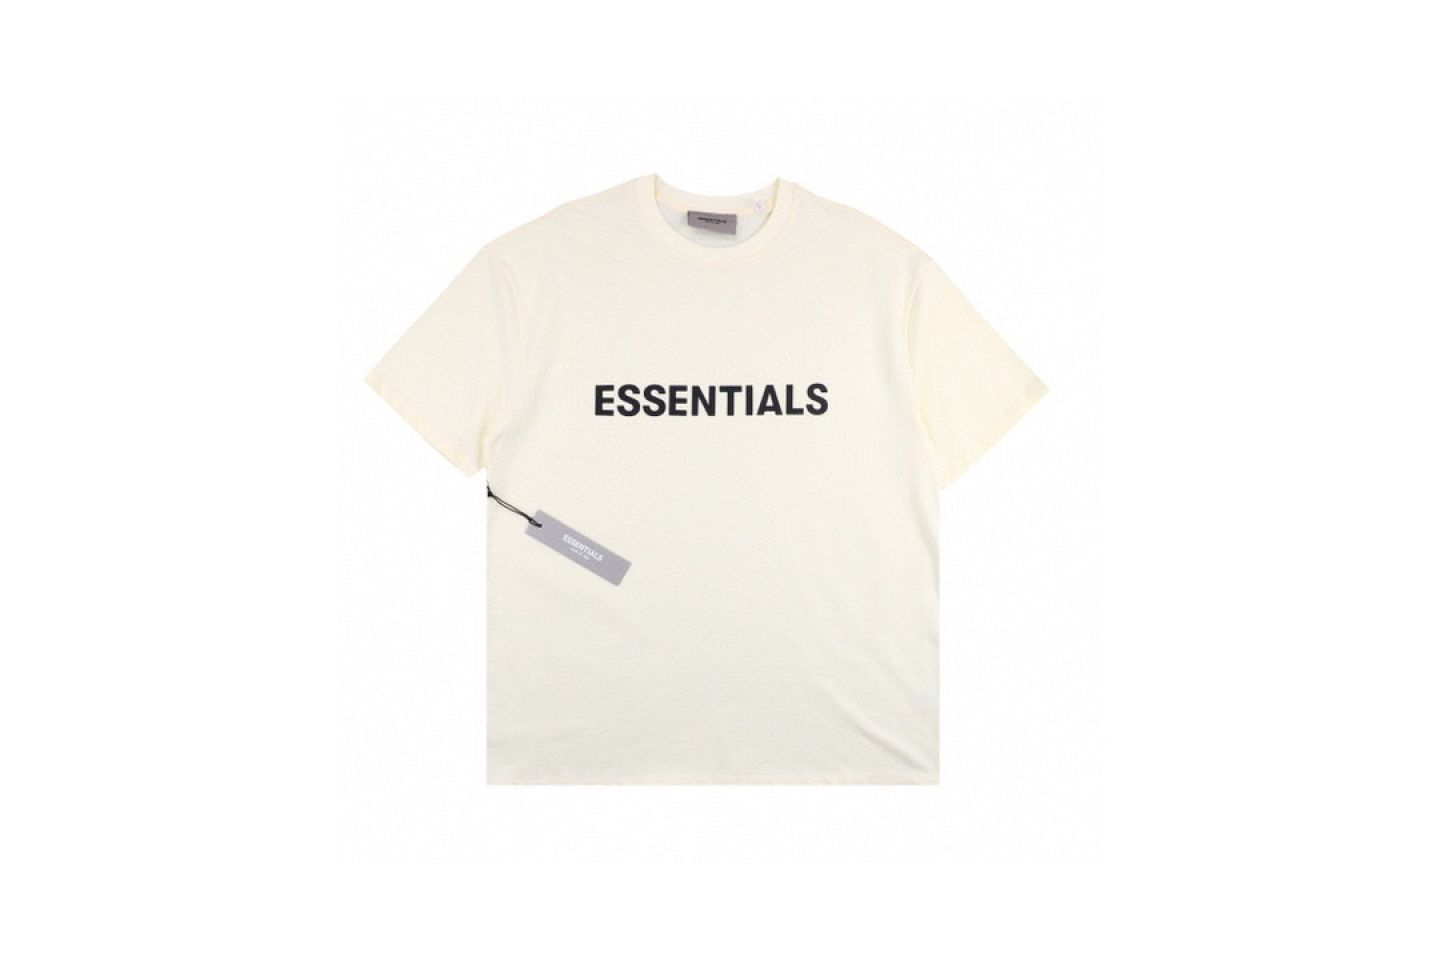 """Shirt Fear Of God ss20 ESSENTIALS double-line chest letter short-sleeved T-shirt """"White"""" 1 fear_of_god_ss20_essentials_double_line_chest_letter_short_sleeved_t_shirt_white_1"""